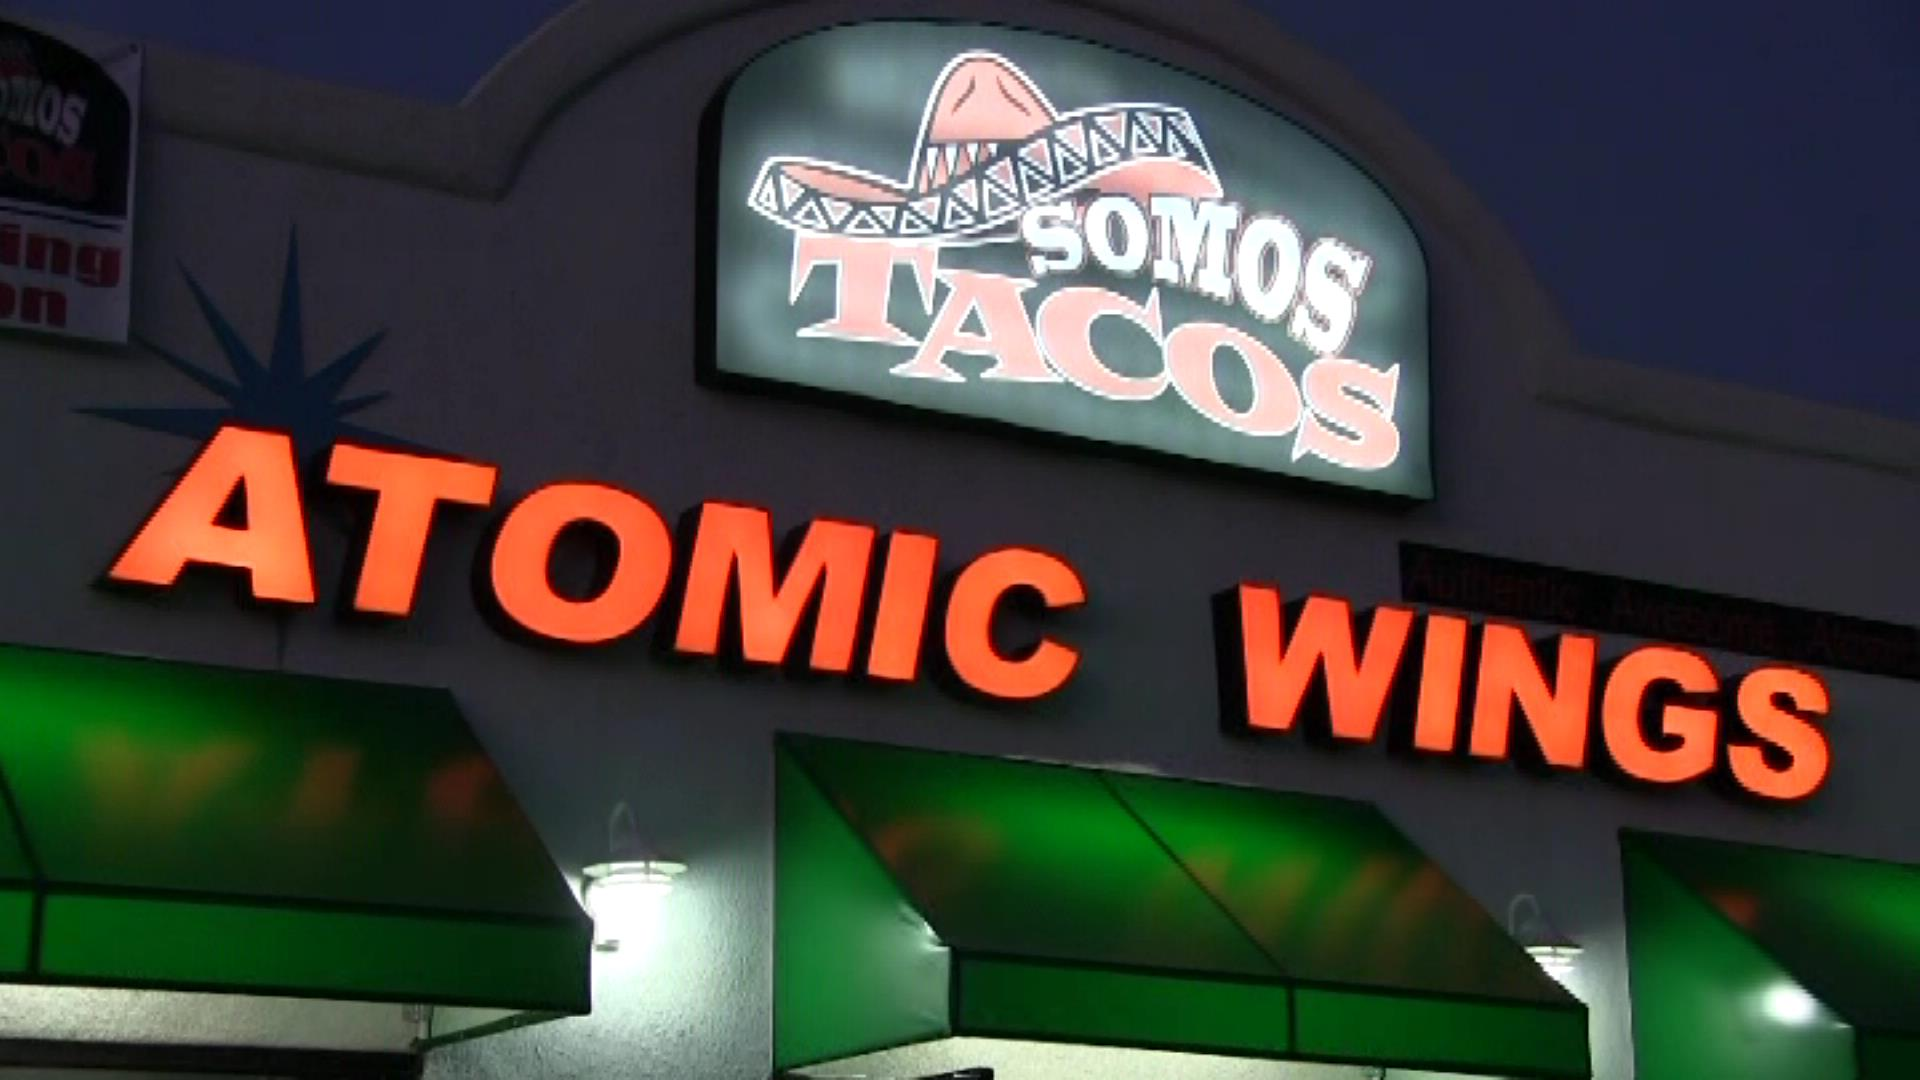 Somos tacos and atomic wings, spring Valley, ca 91977